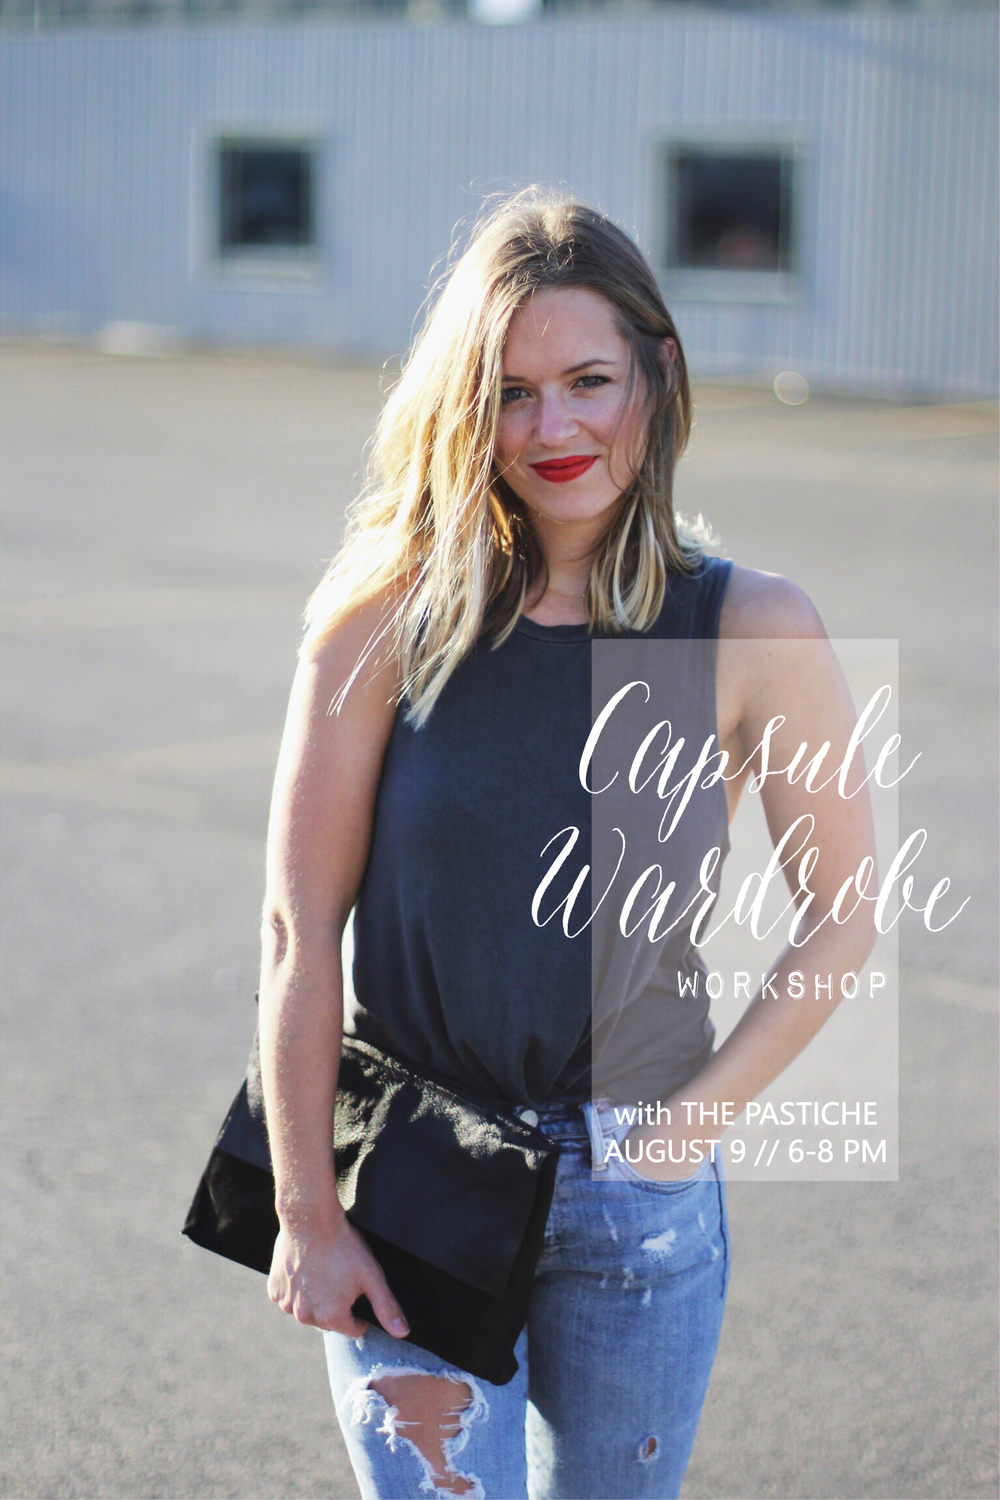 Capsule Wardrobe workshop at West Elm! - The Pastiche